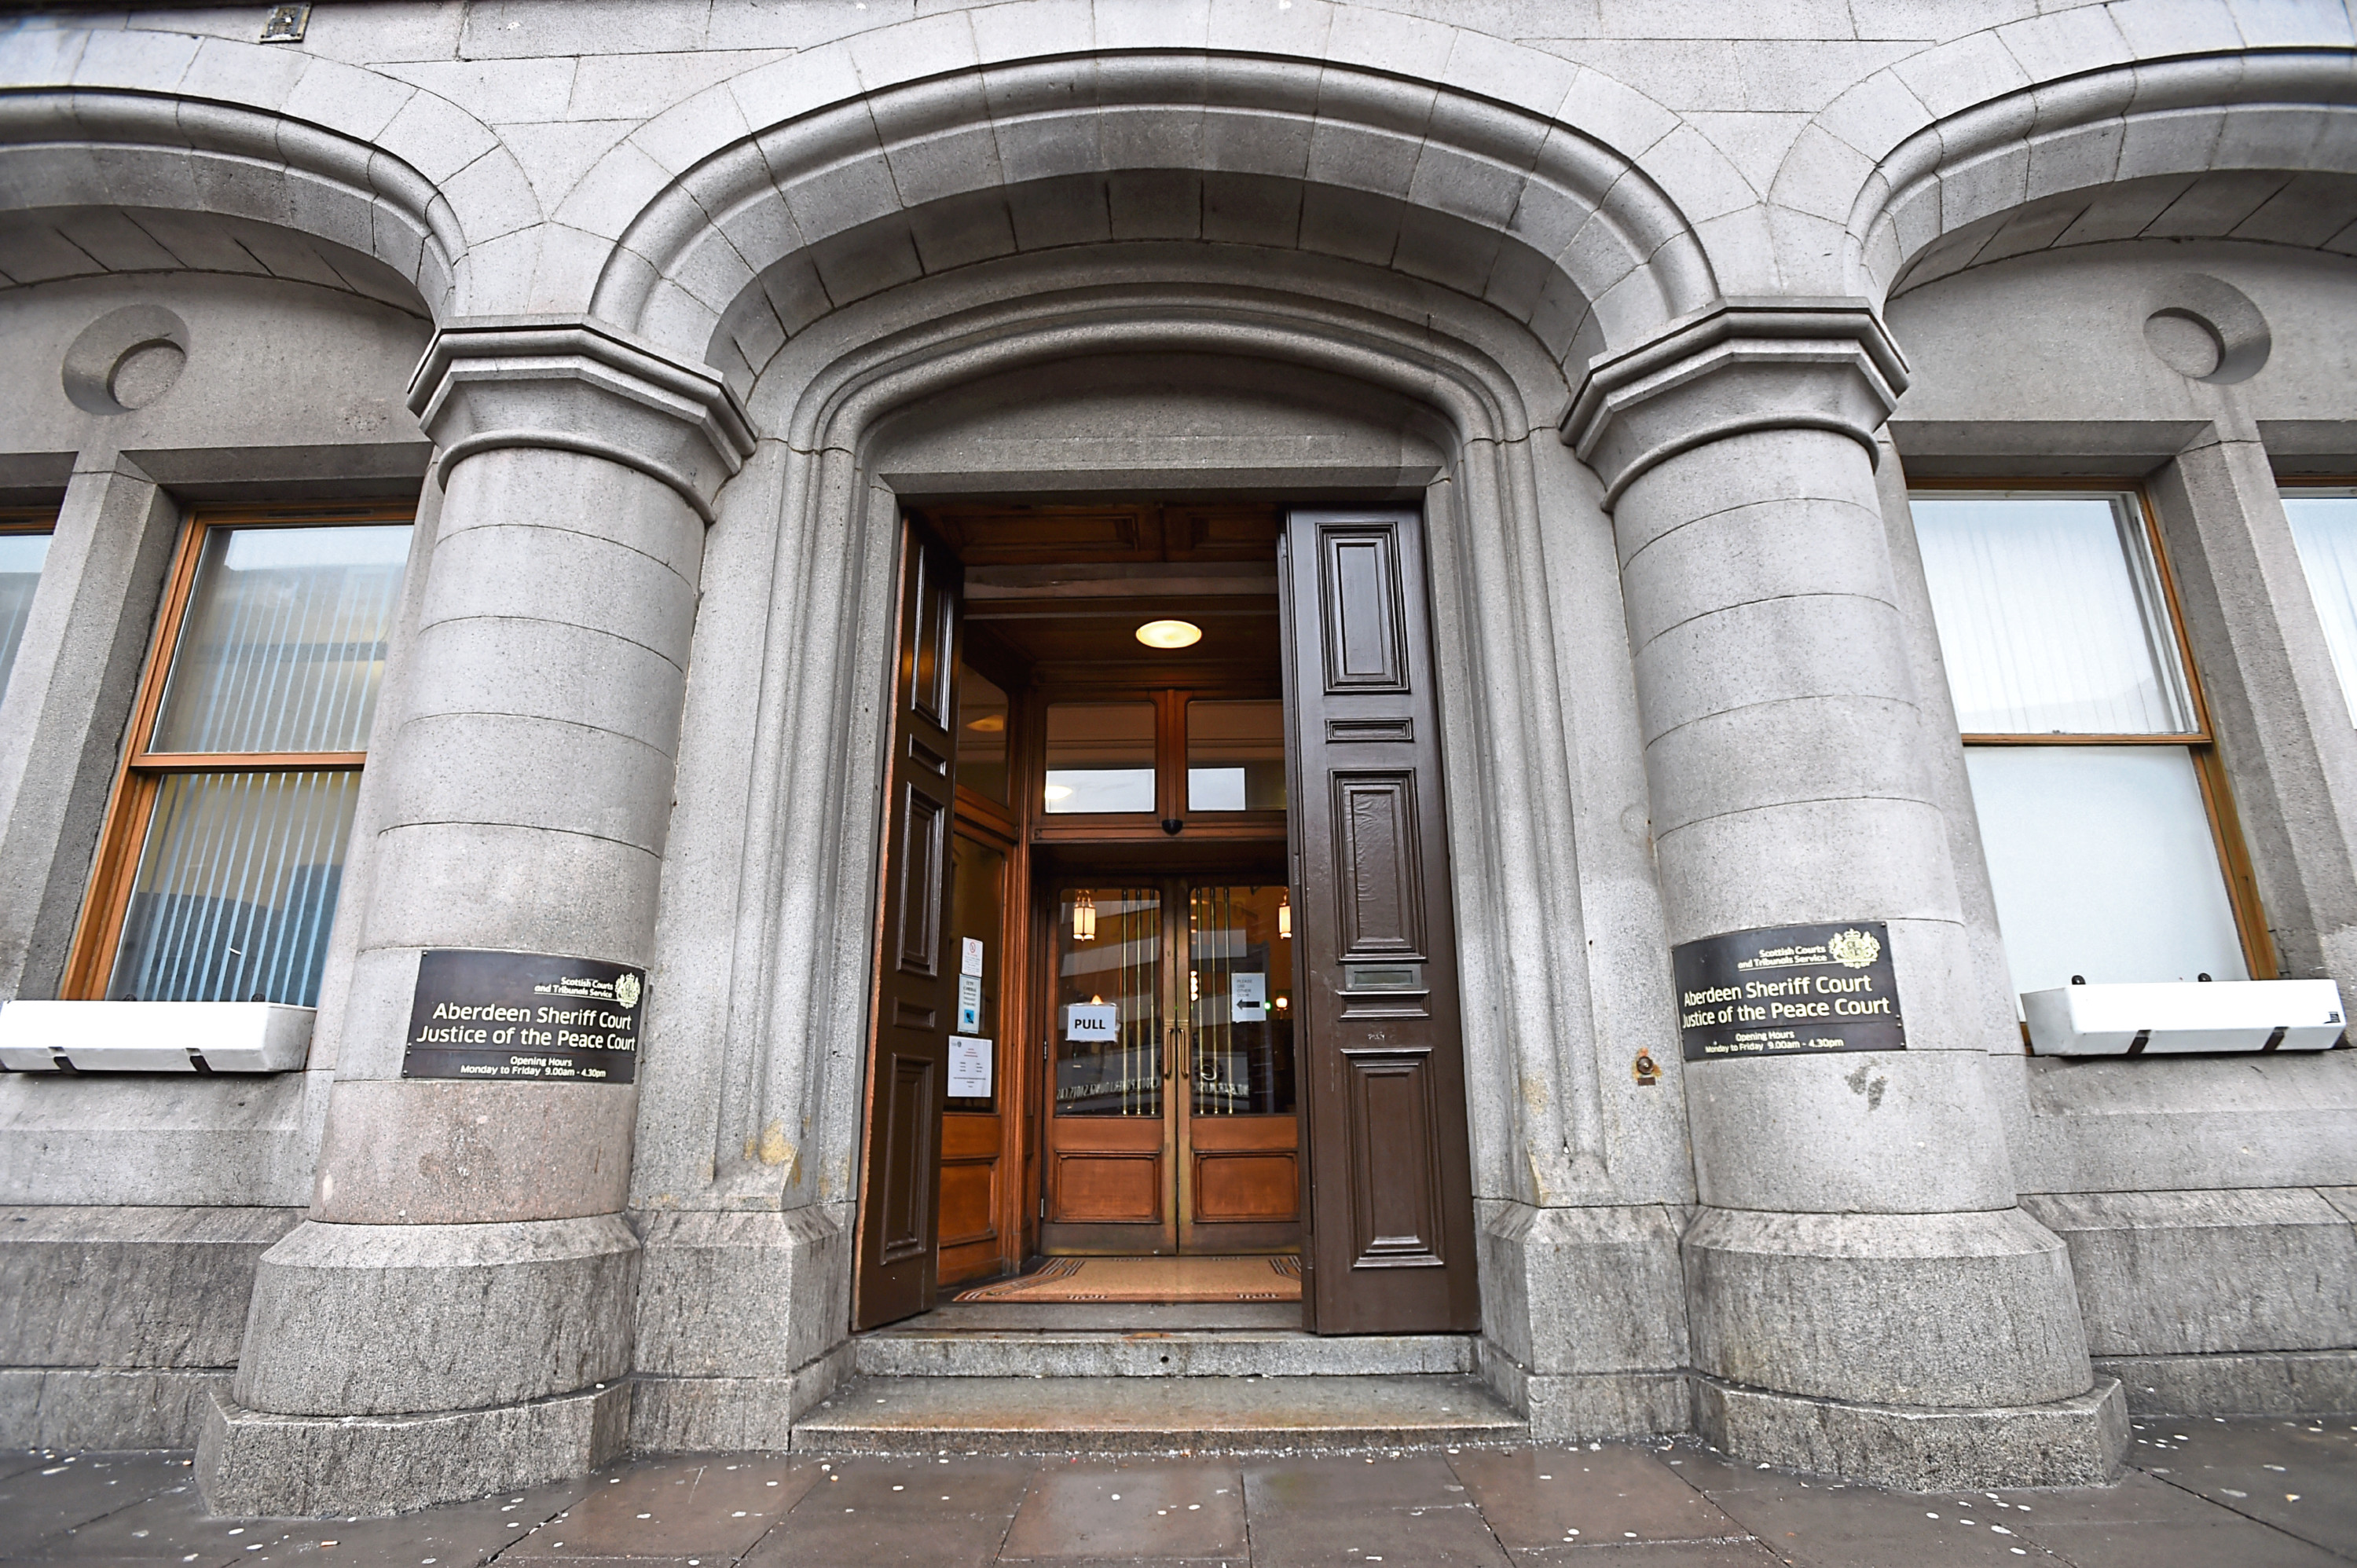 Ross Sim was fined £360 at Aberdeen Sheriff Court for his actions